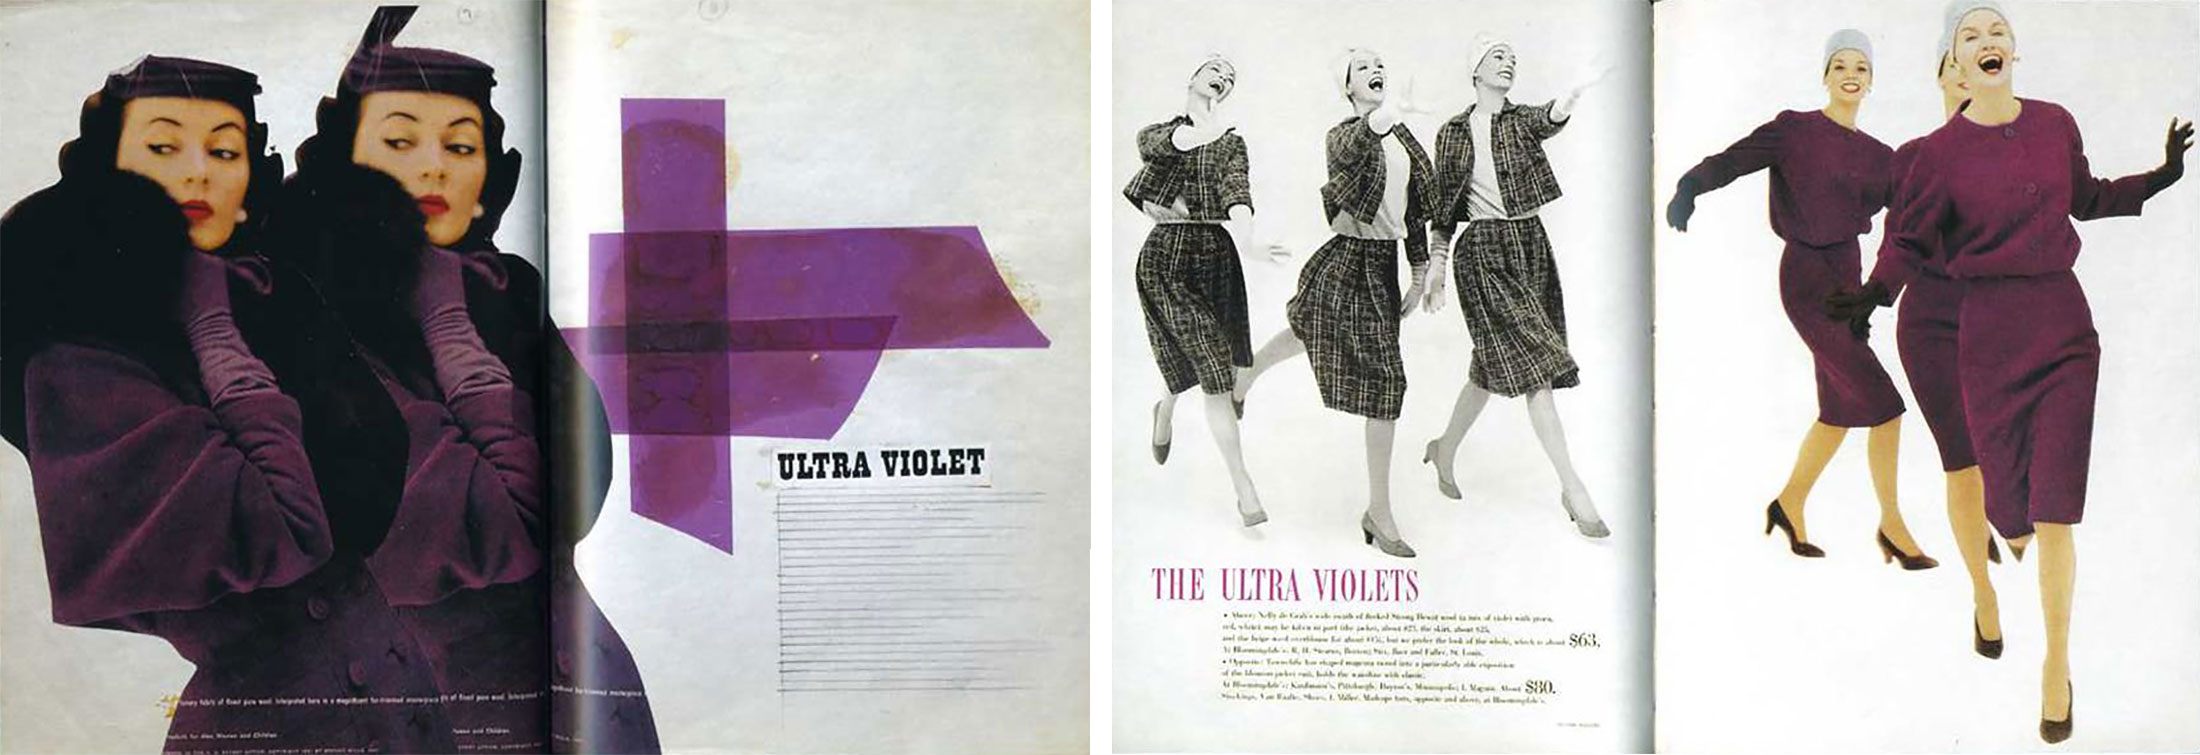 Alexey-Brodovitch-harper-The-Ultra-Violets-1958